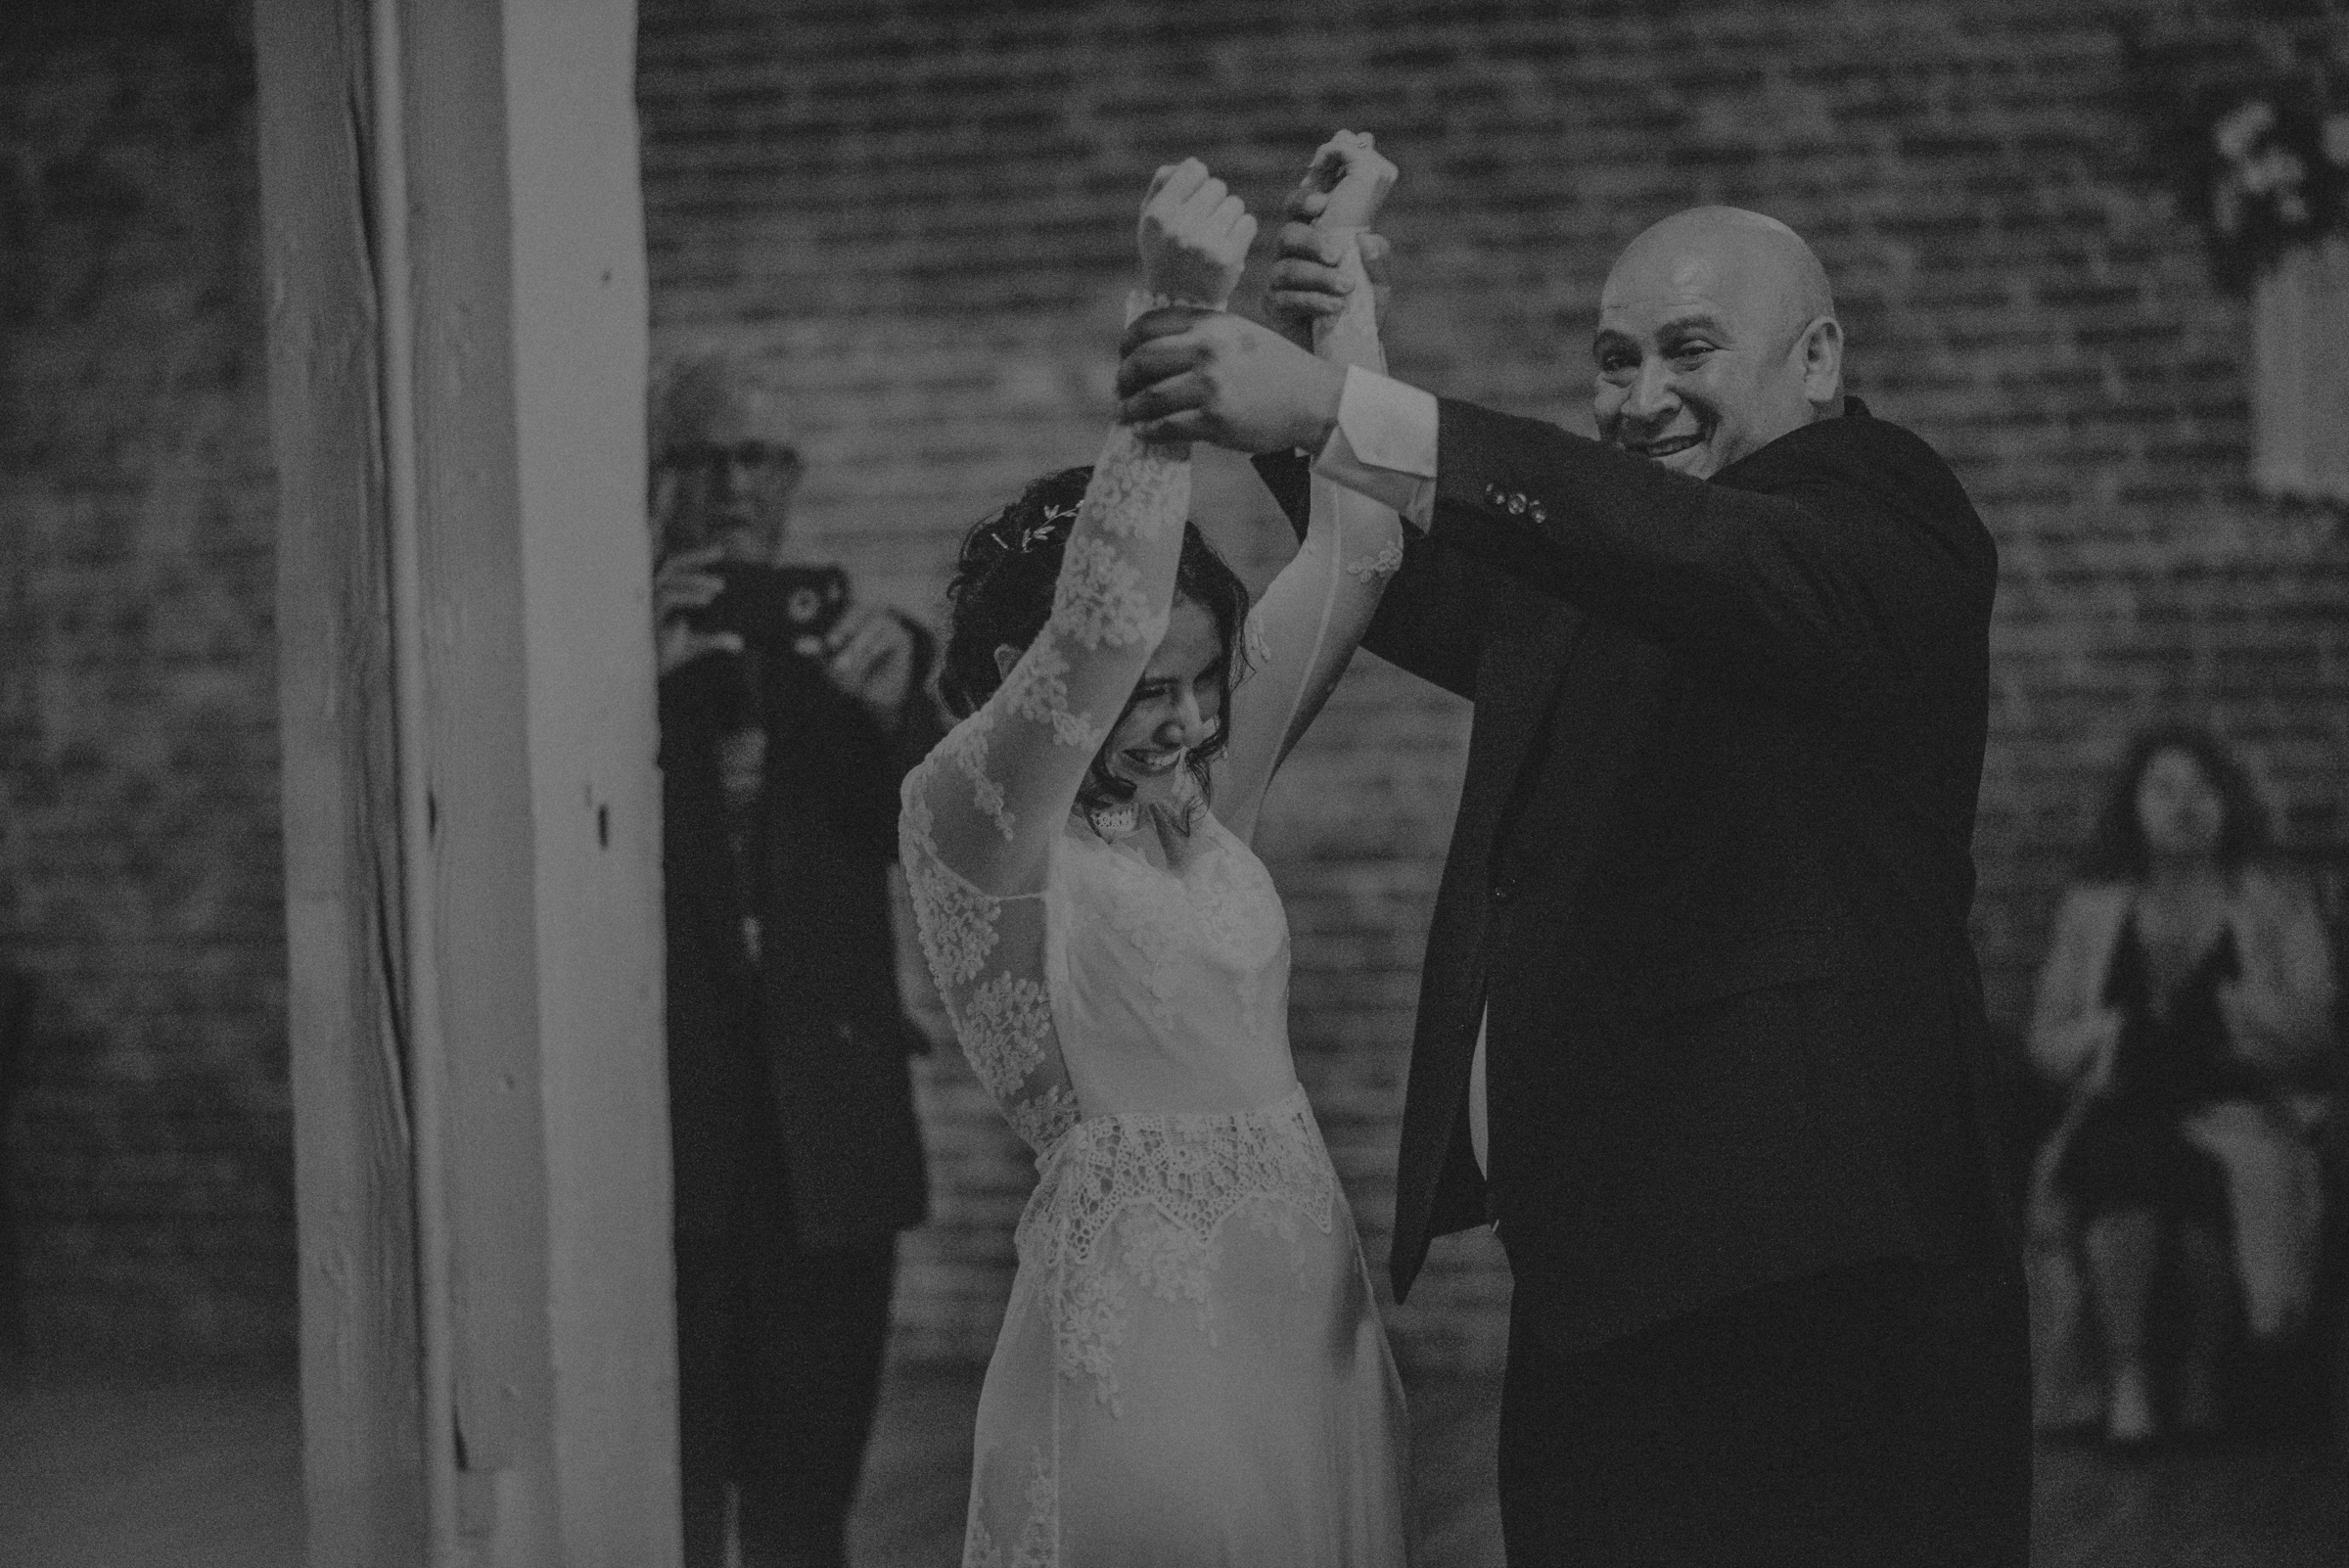 Isaiah + Taylor Photography - The Unique Space Wedding, Los Angeles Wedding Photography 151.jpg